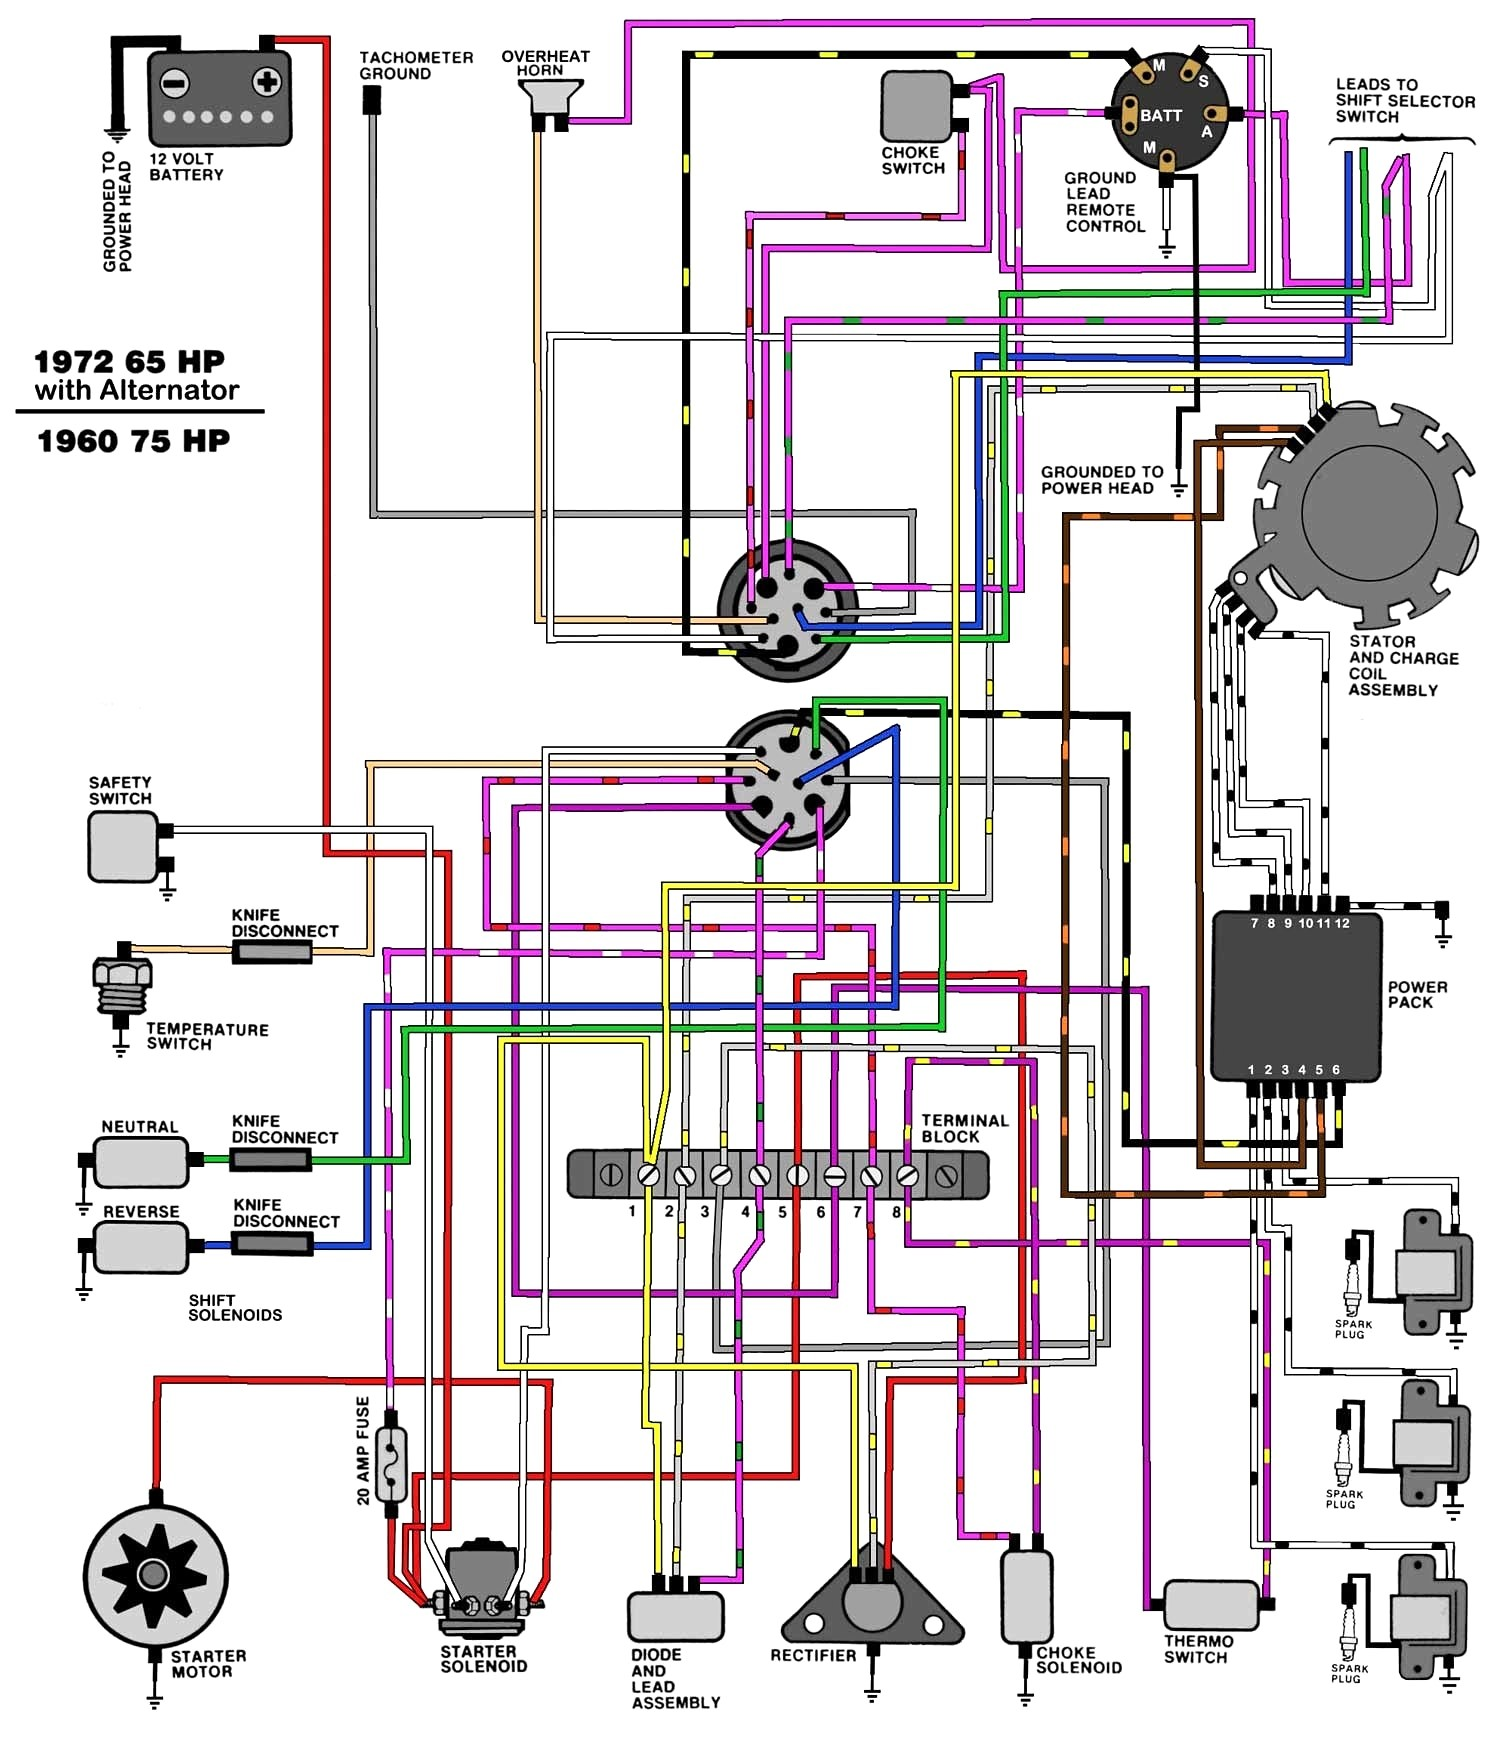 Chrysler 3 8 Engine Diagram Mastertech Marine Evinrude Johnson Outboard  Wiring Diagrams for Of Chrysler 3